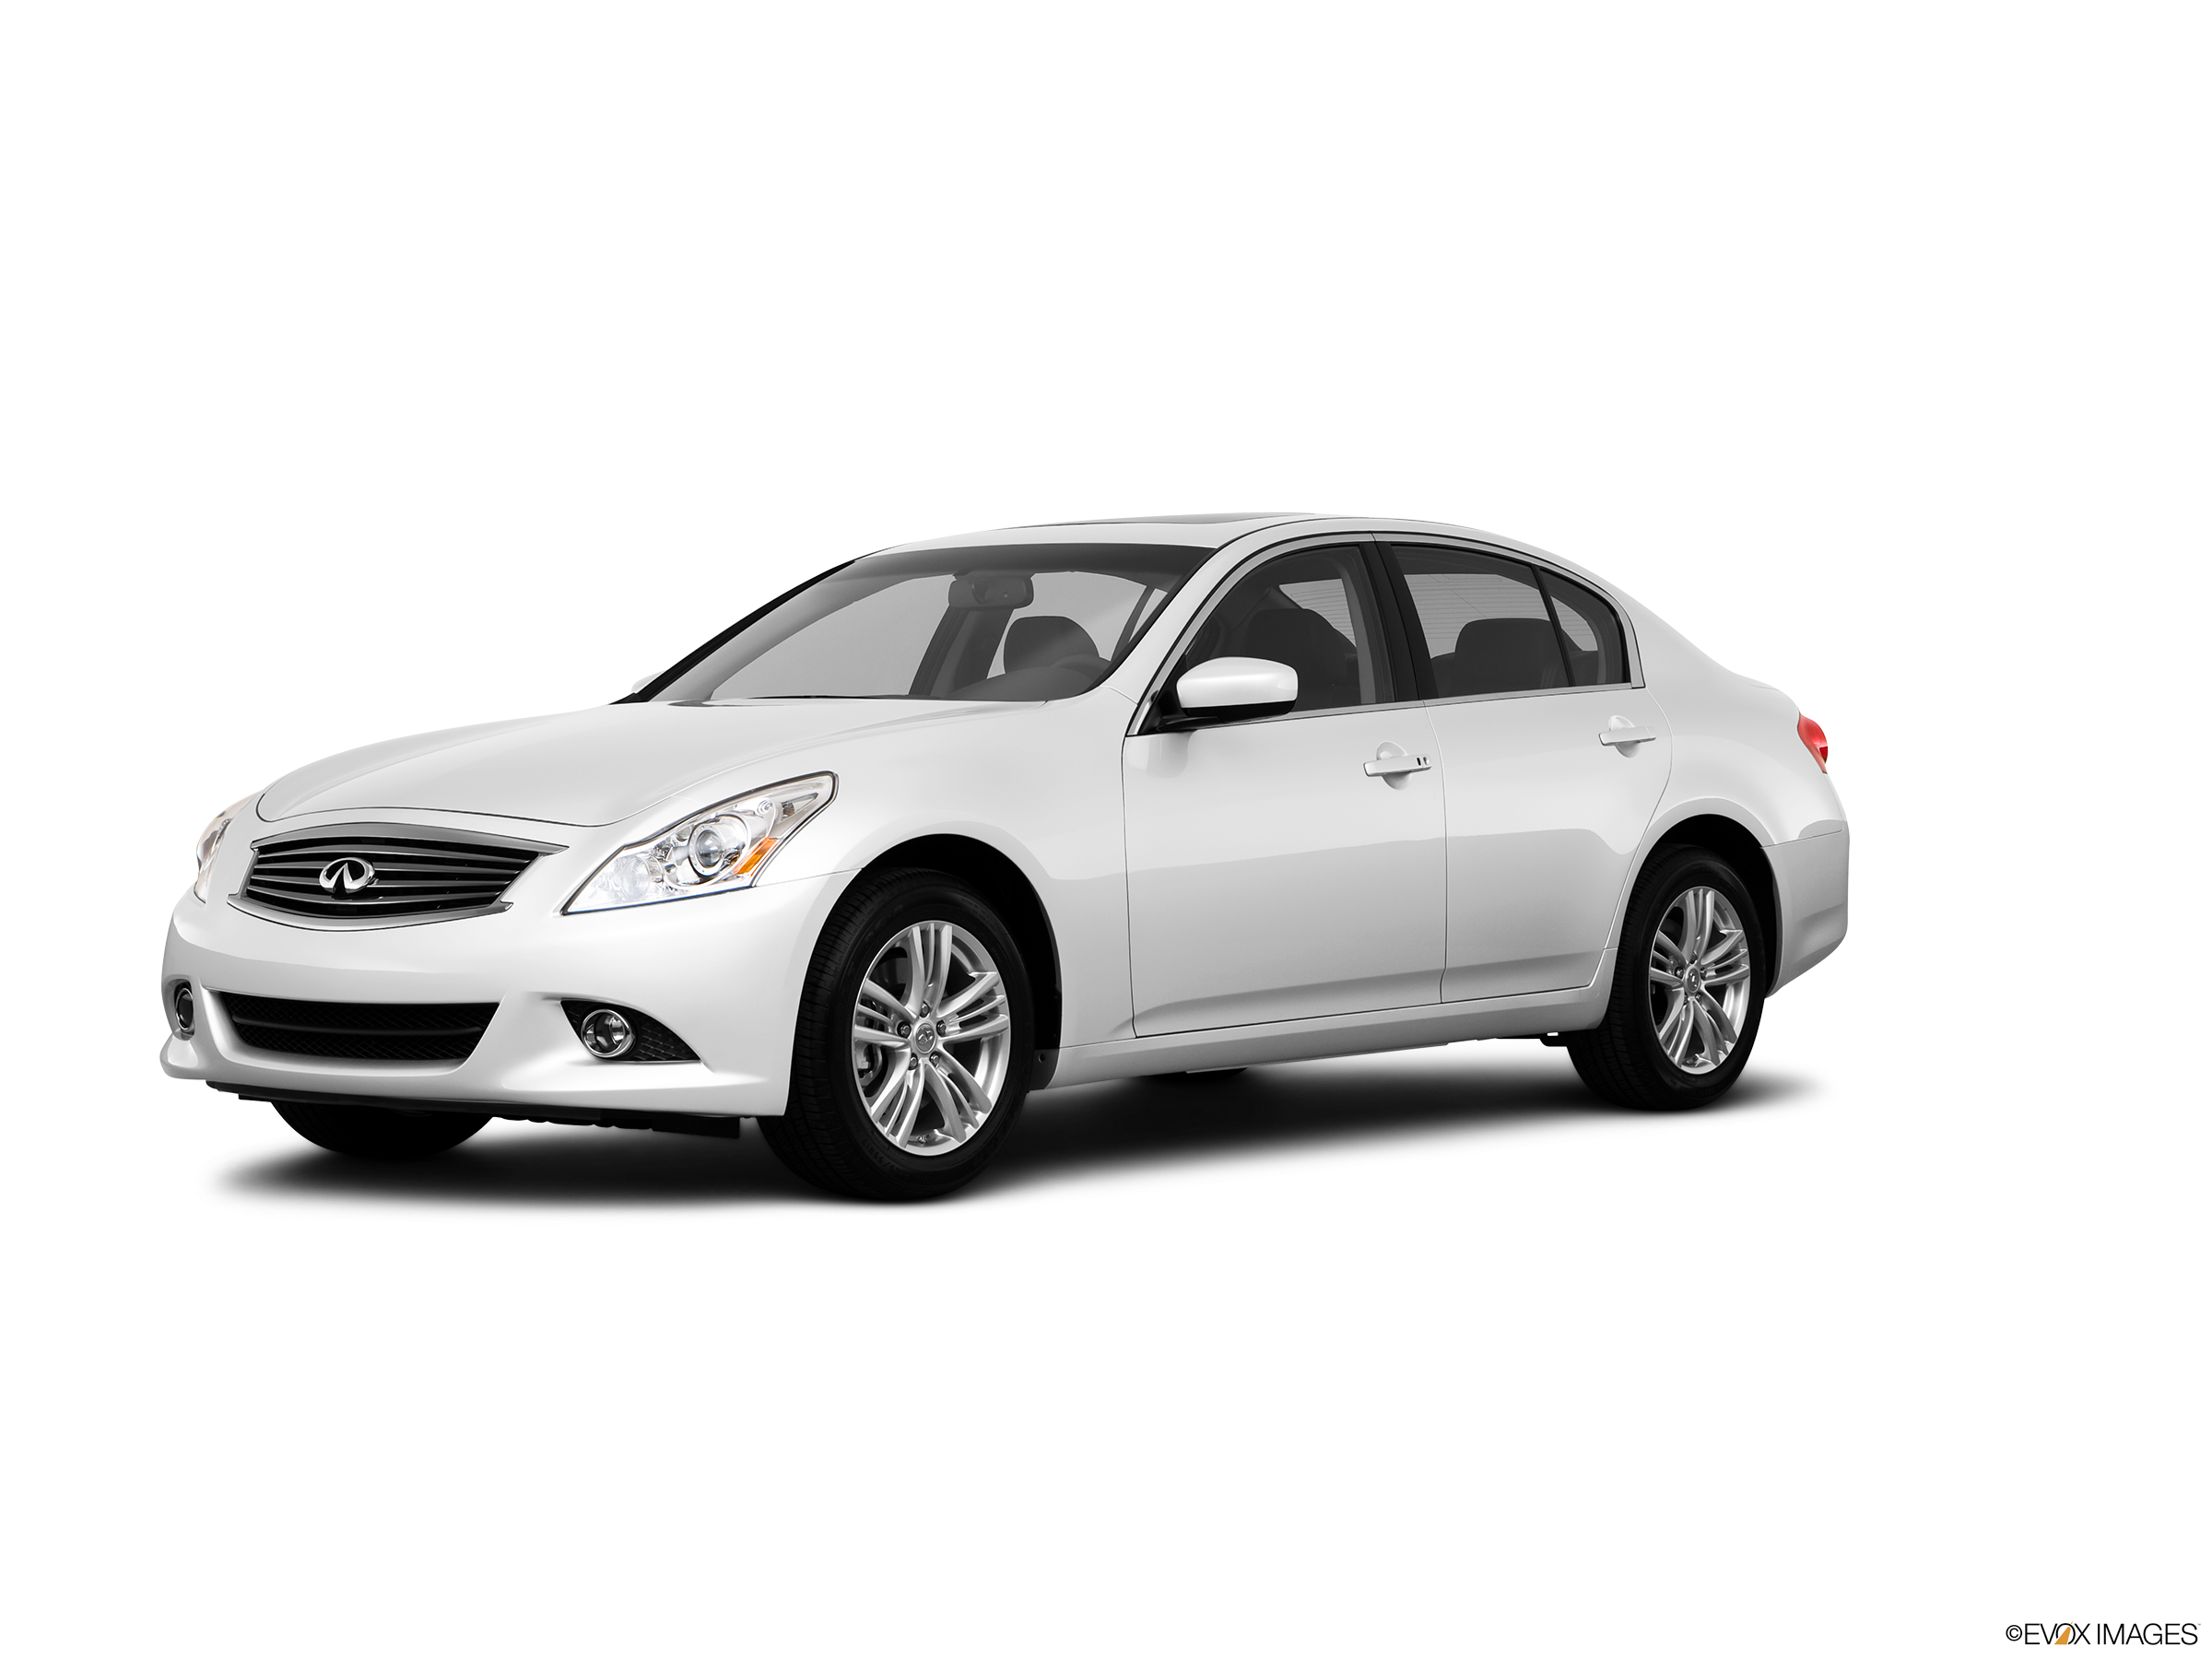 2010 Infiniti G Values Cars For Sale Kelley Blue Book